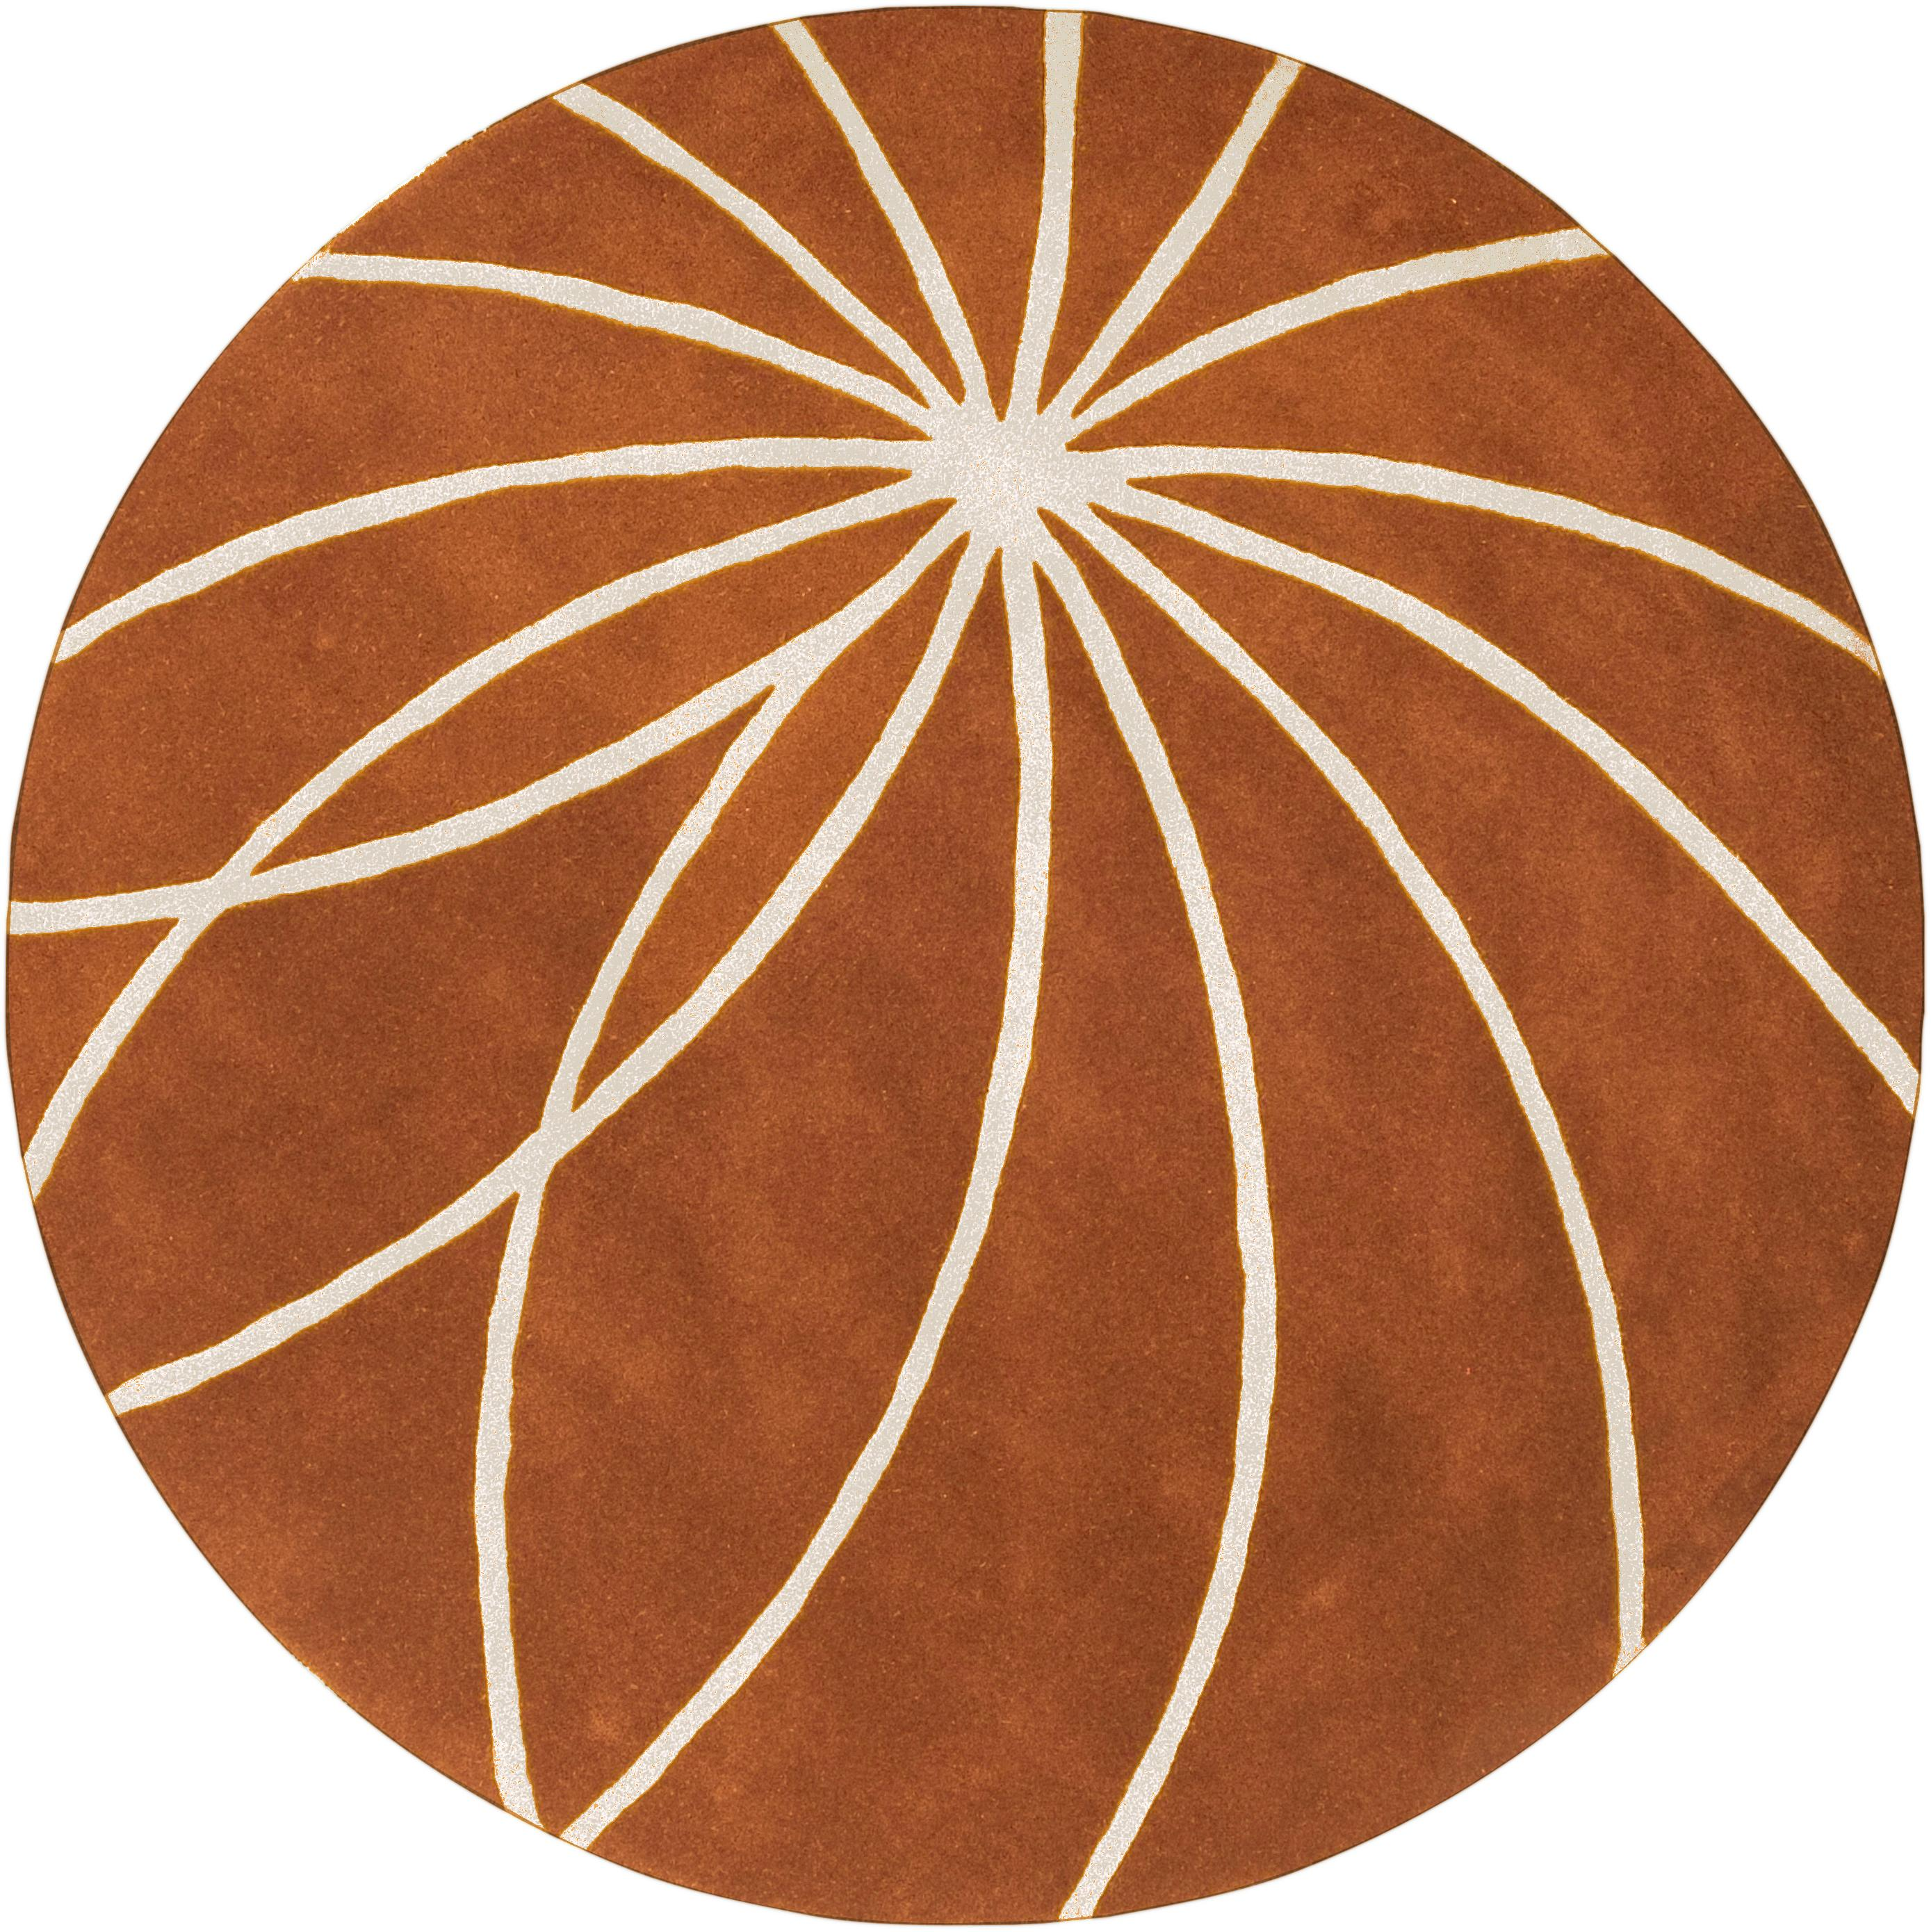 Surya Rugs Forum 4' Round - Item Number: FM7175-4RD